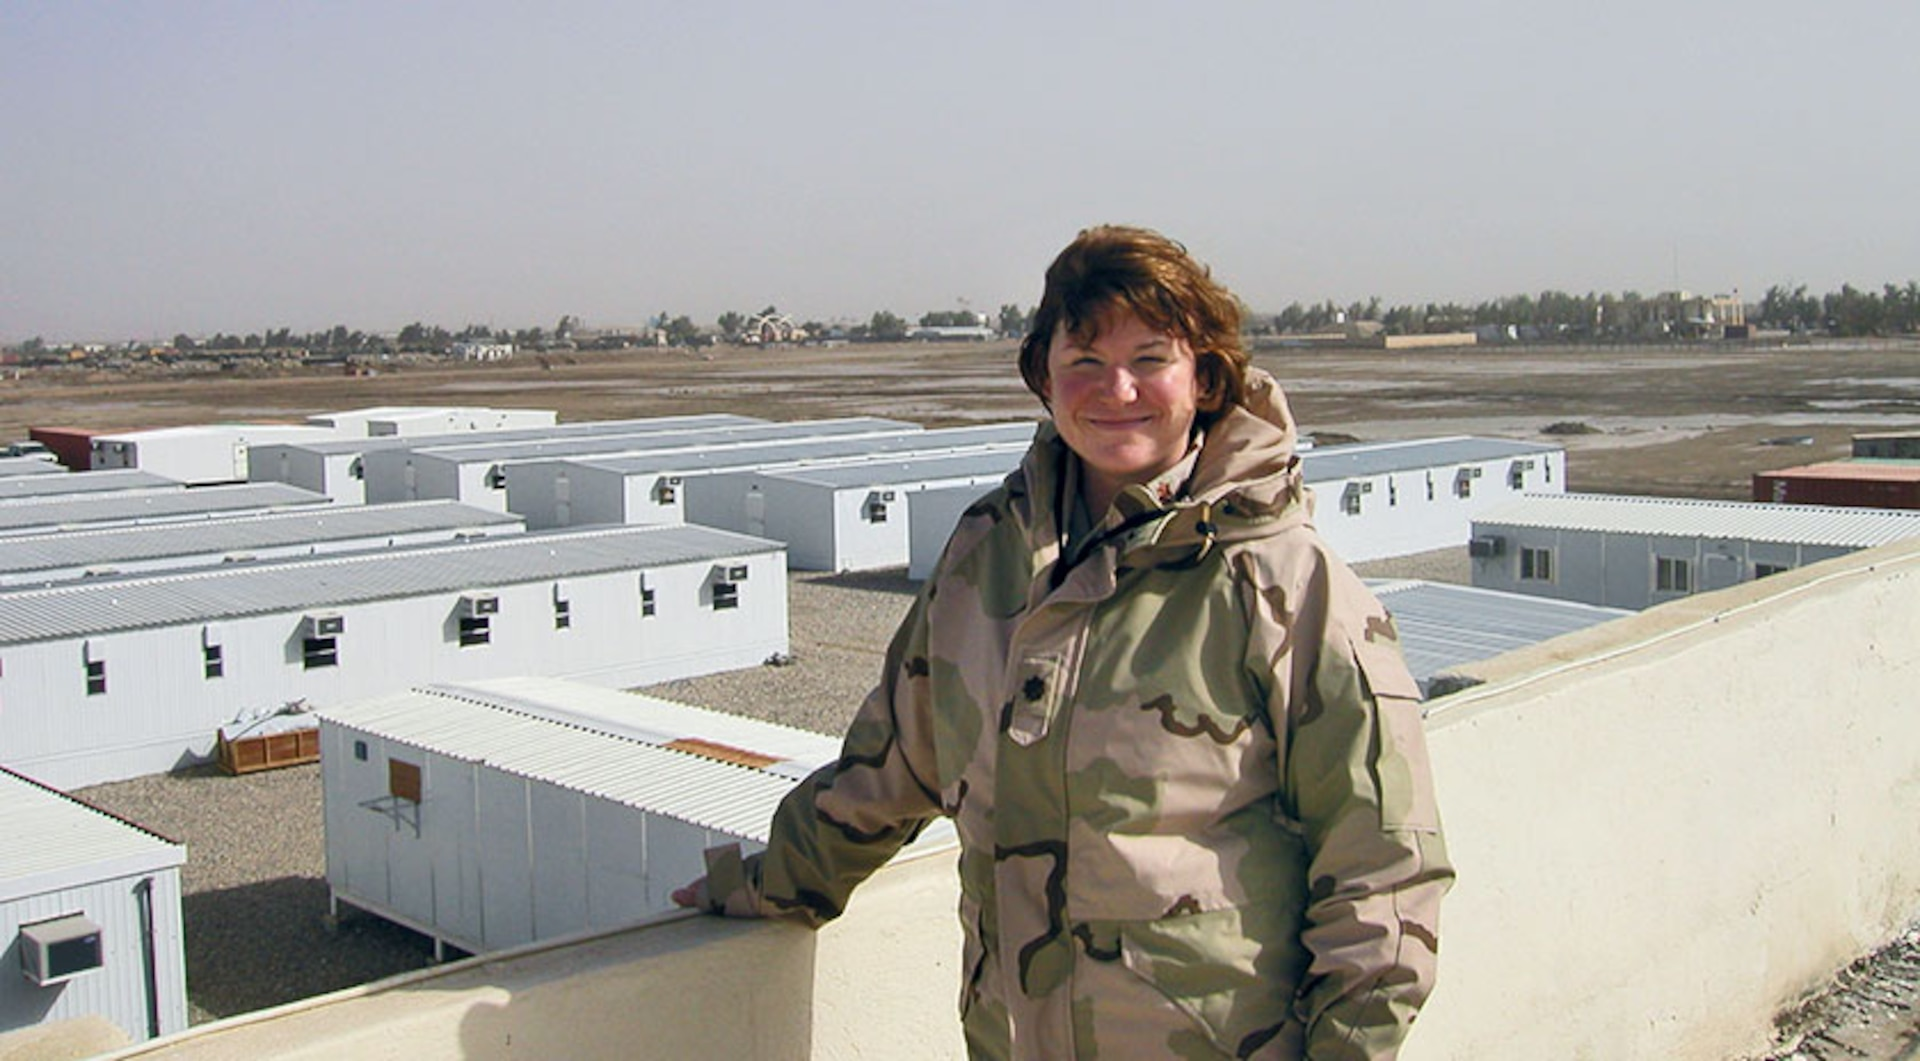 Becky stands on a rooftop overlooking small buildings in a desert town